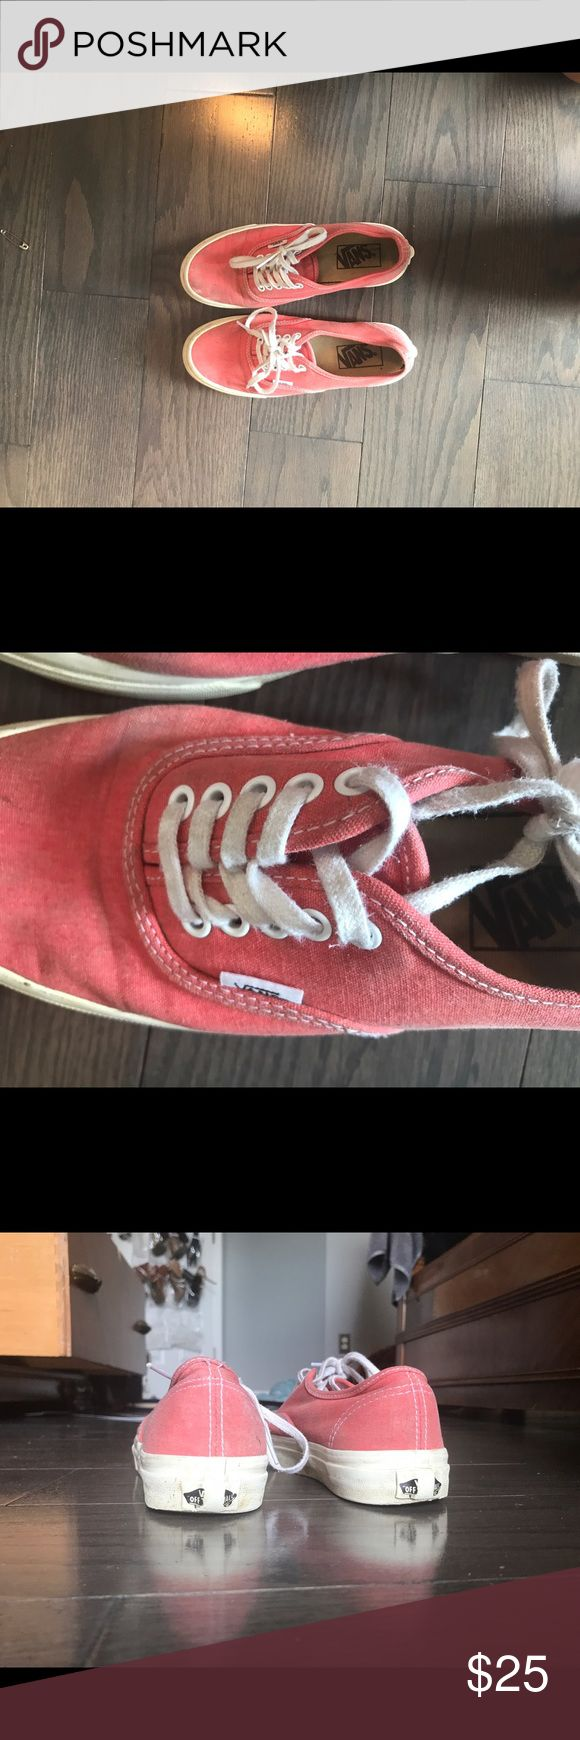 Faded coral vans Got these several years ago and haven't worn them very often. They're a faded coral pink color and they've been worn but they're in pretty good condition. Originally $90! Vans Shoes